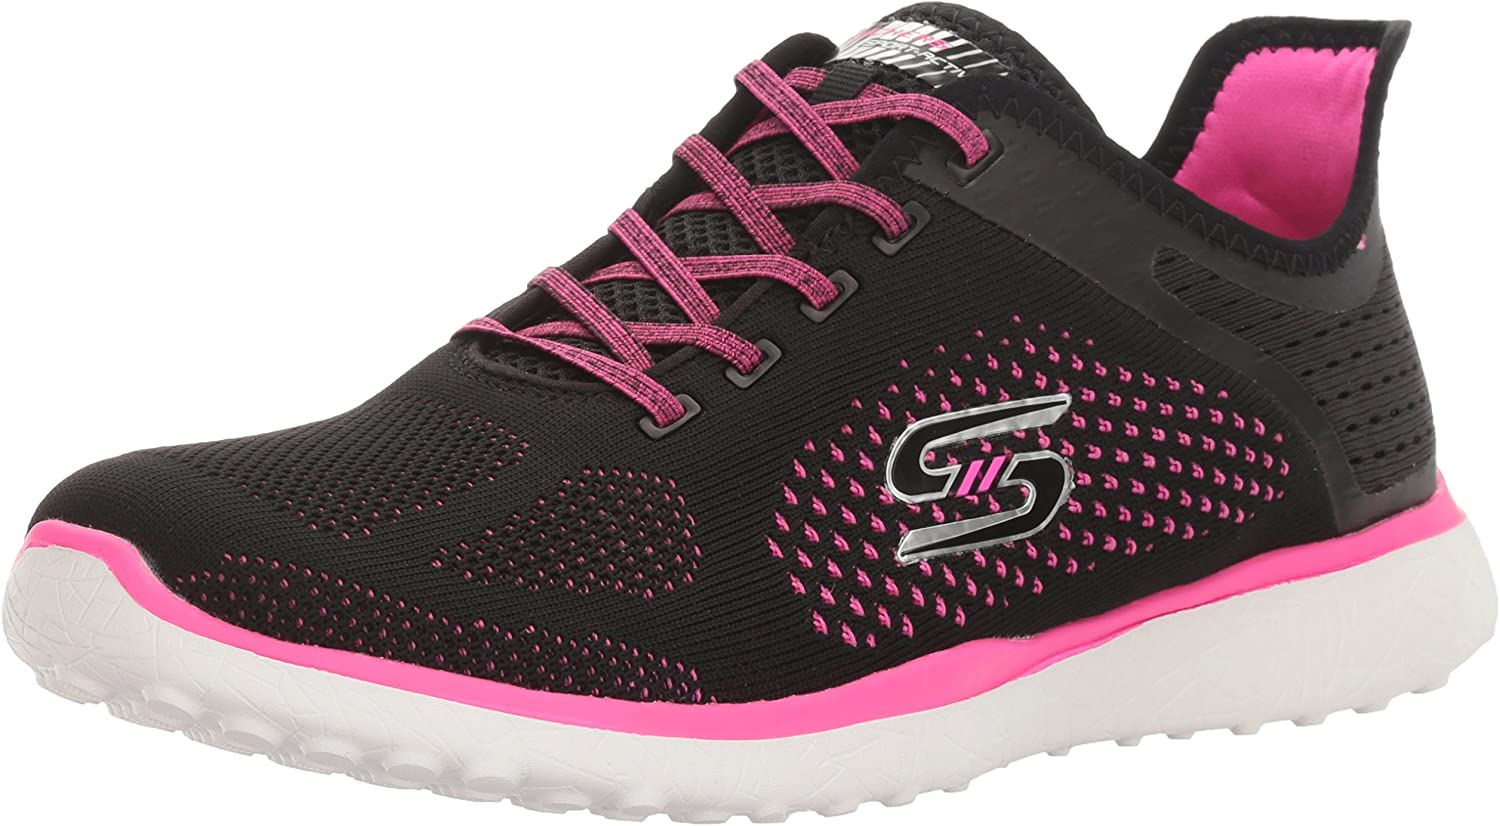 23327 MICROBURST SUPERSONIC Walking Shoes    17H Womens Skechers